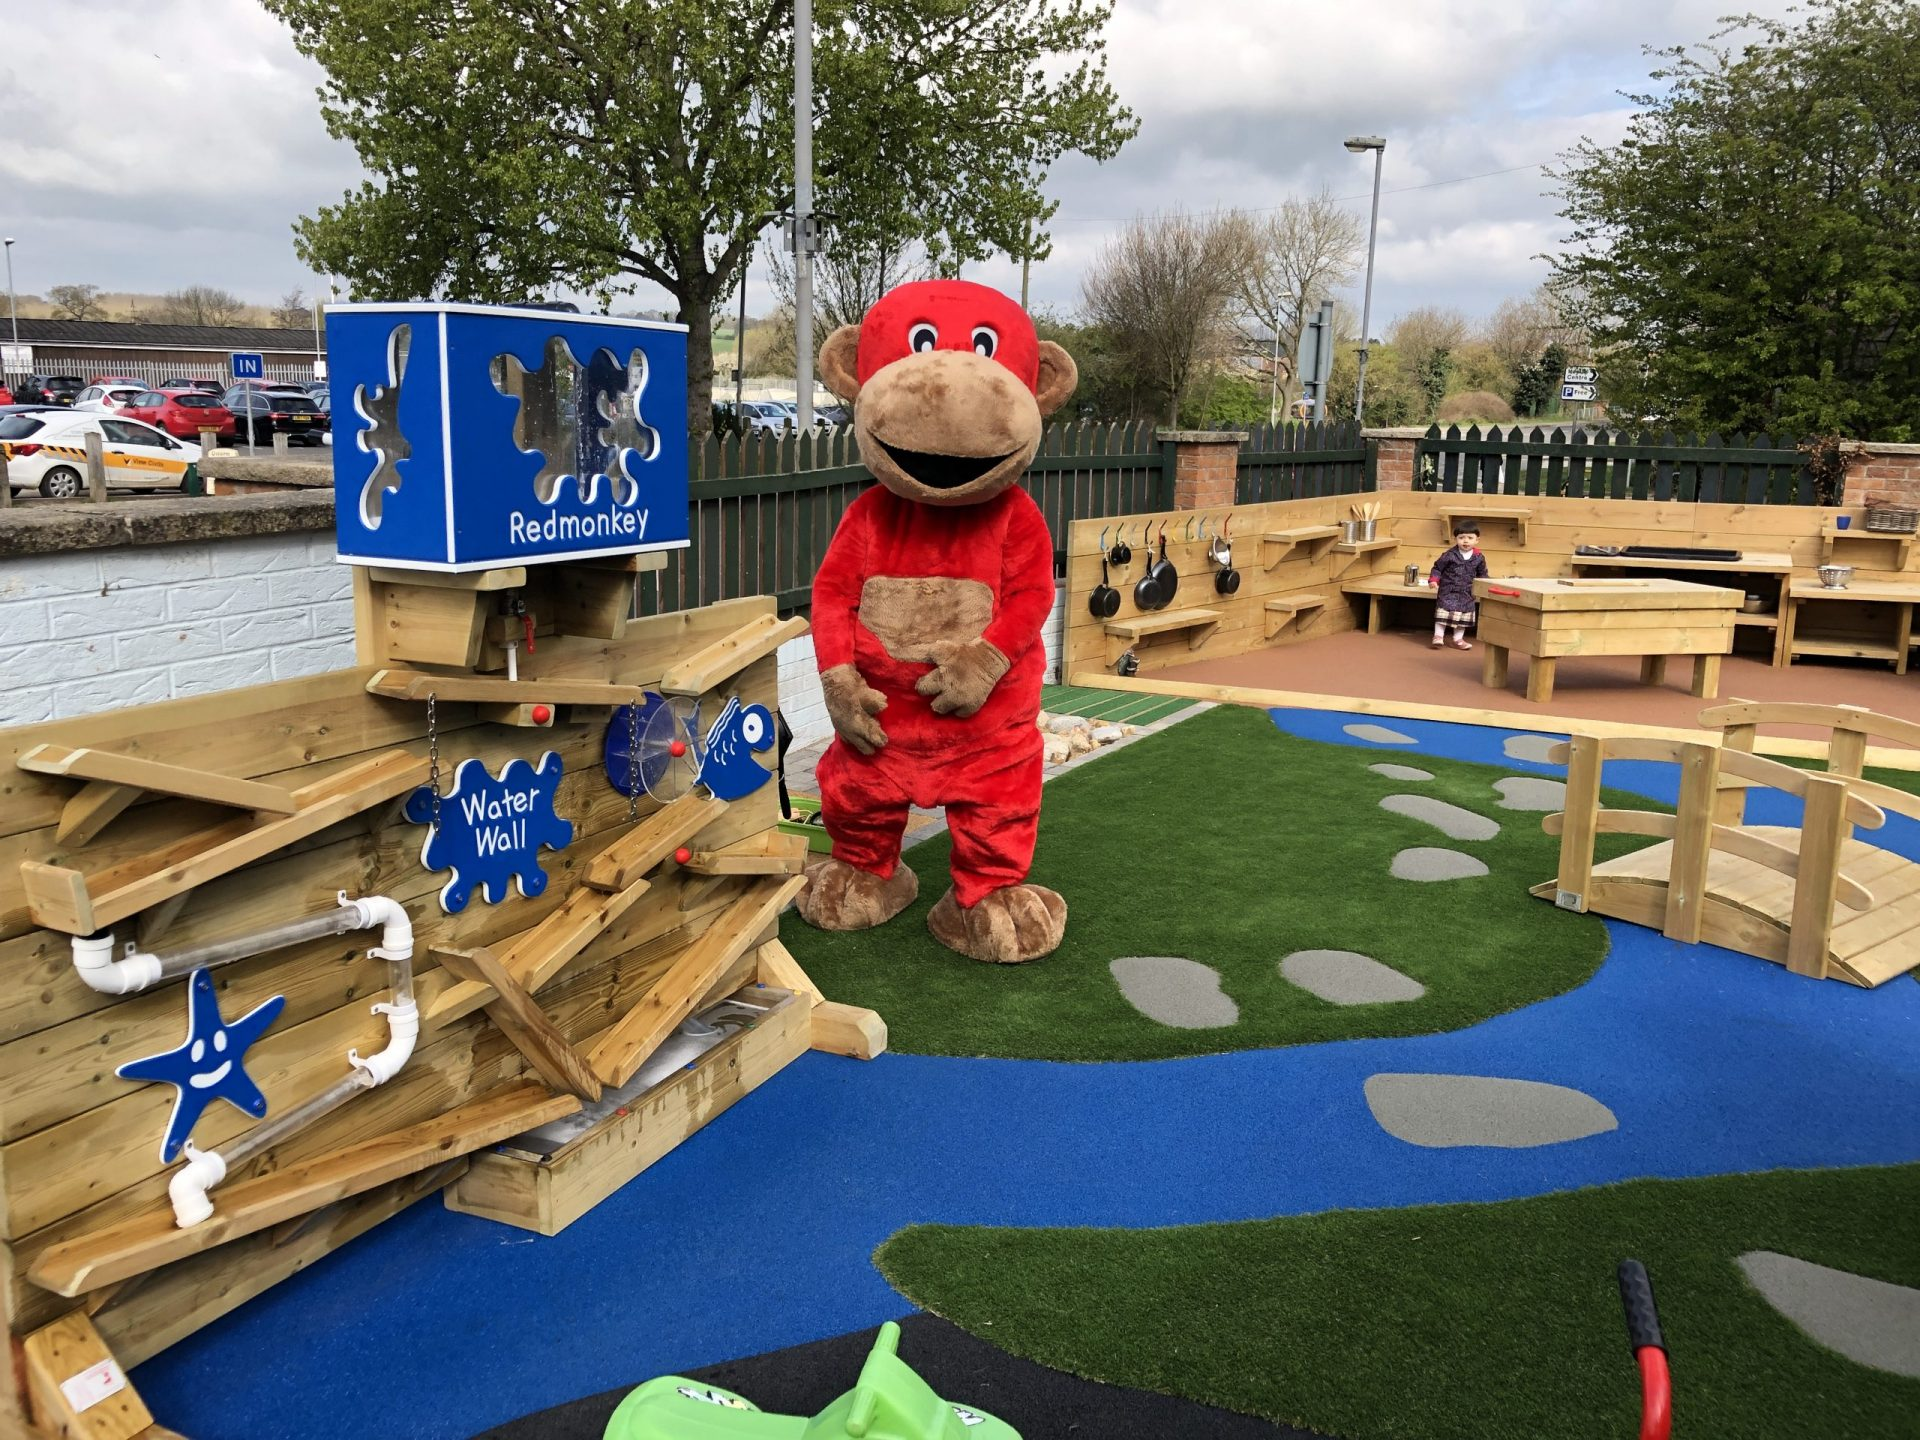 red monkey mascot in outdoor playground area